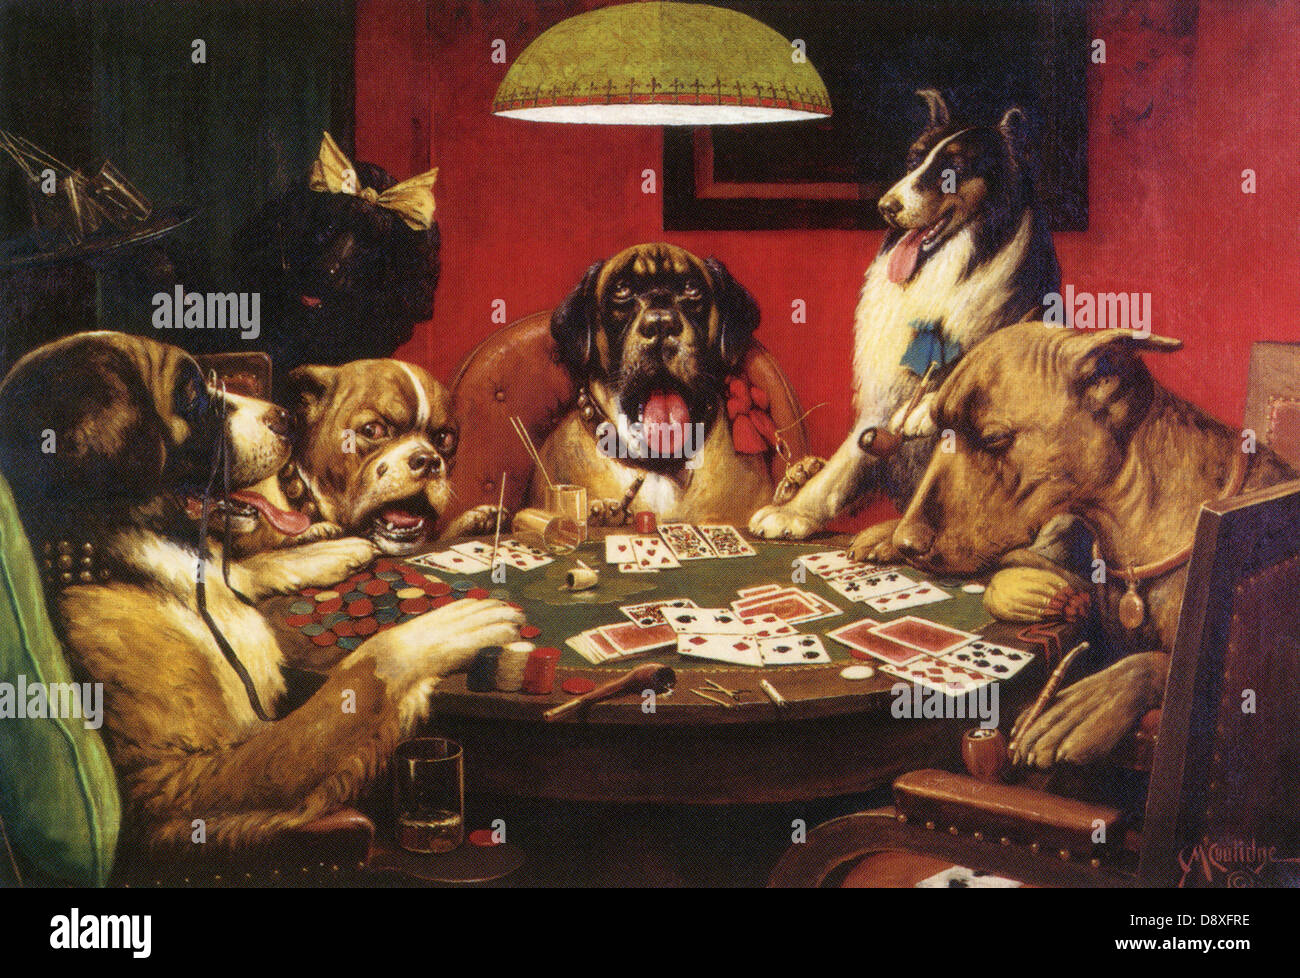 Gambling dogs picture